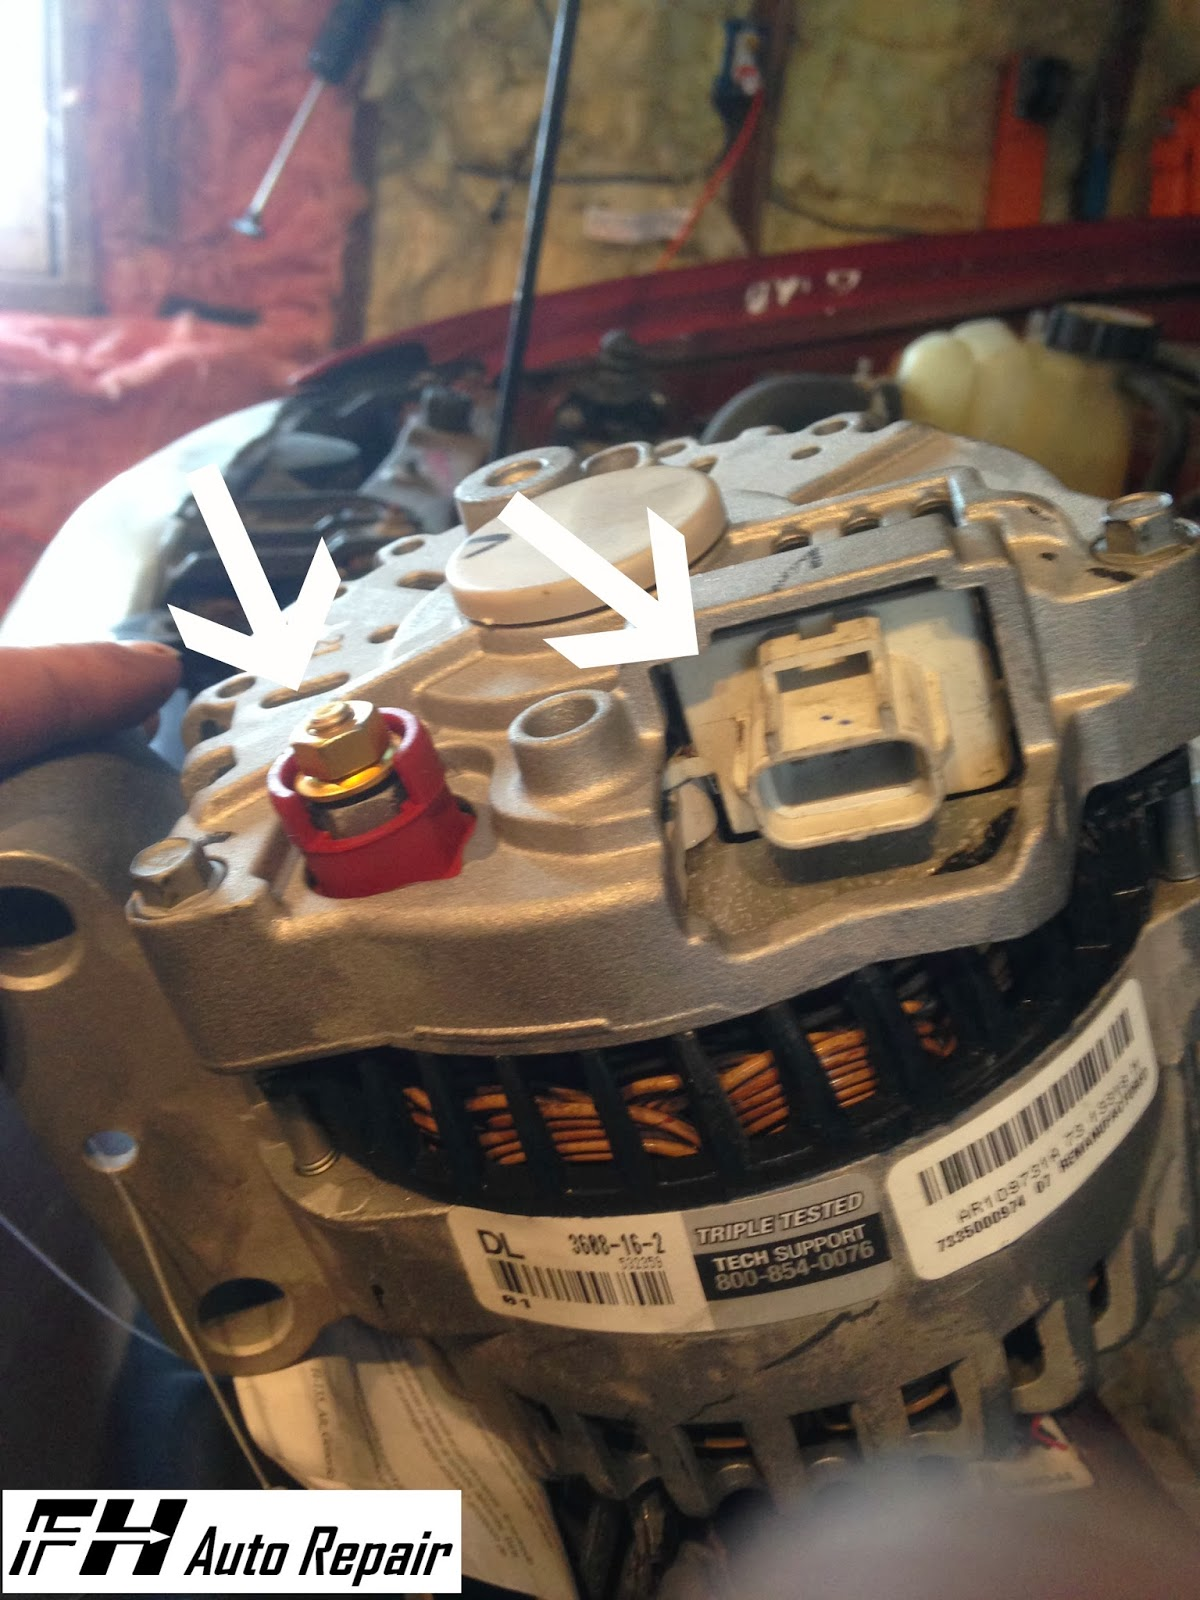 Fh Auto Repair How To Replace The Alternator On A 2001 2004 Ford 1972 Ford  Bronco 2002 Ford Escape Alternator Wiring ...